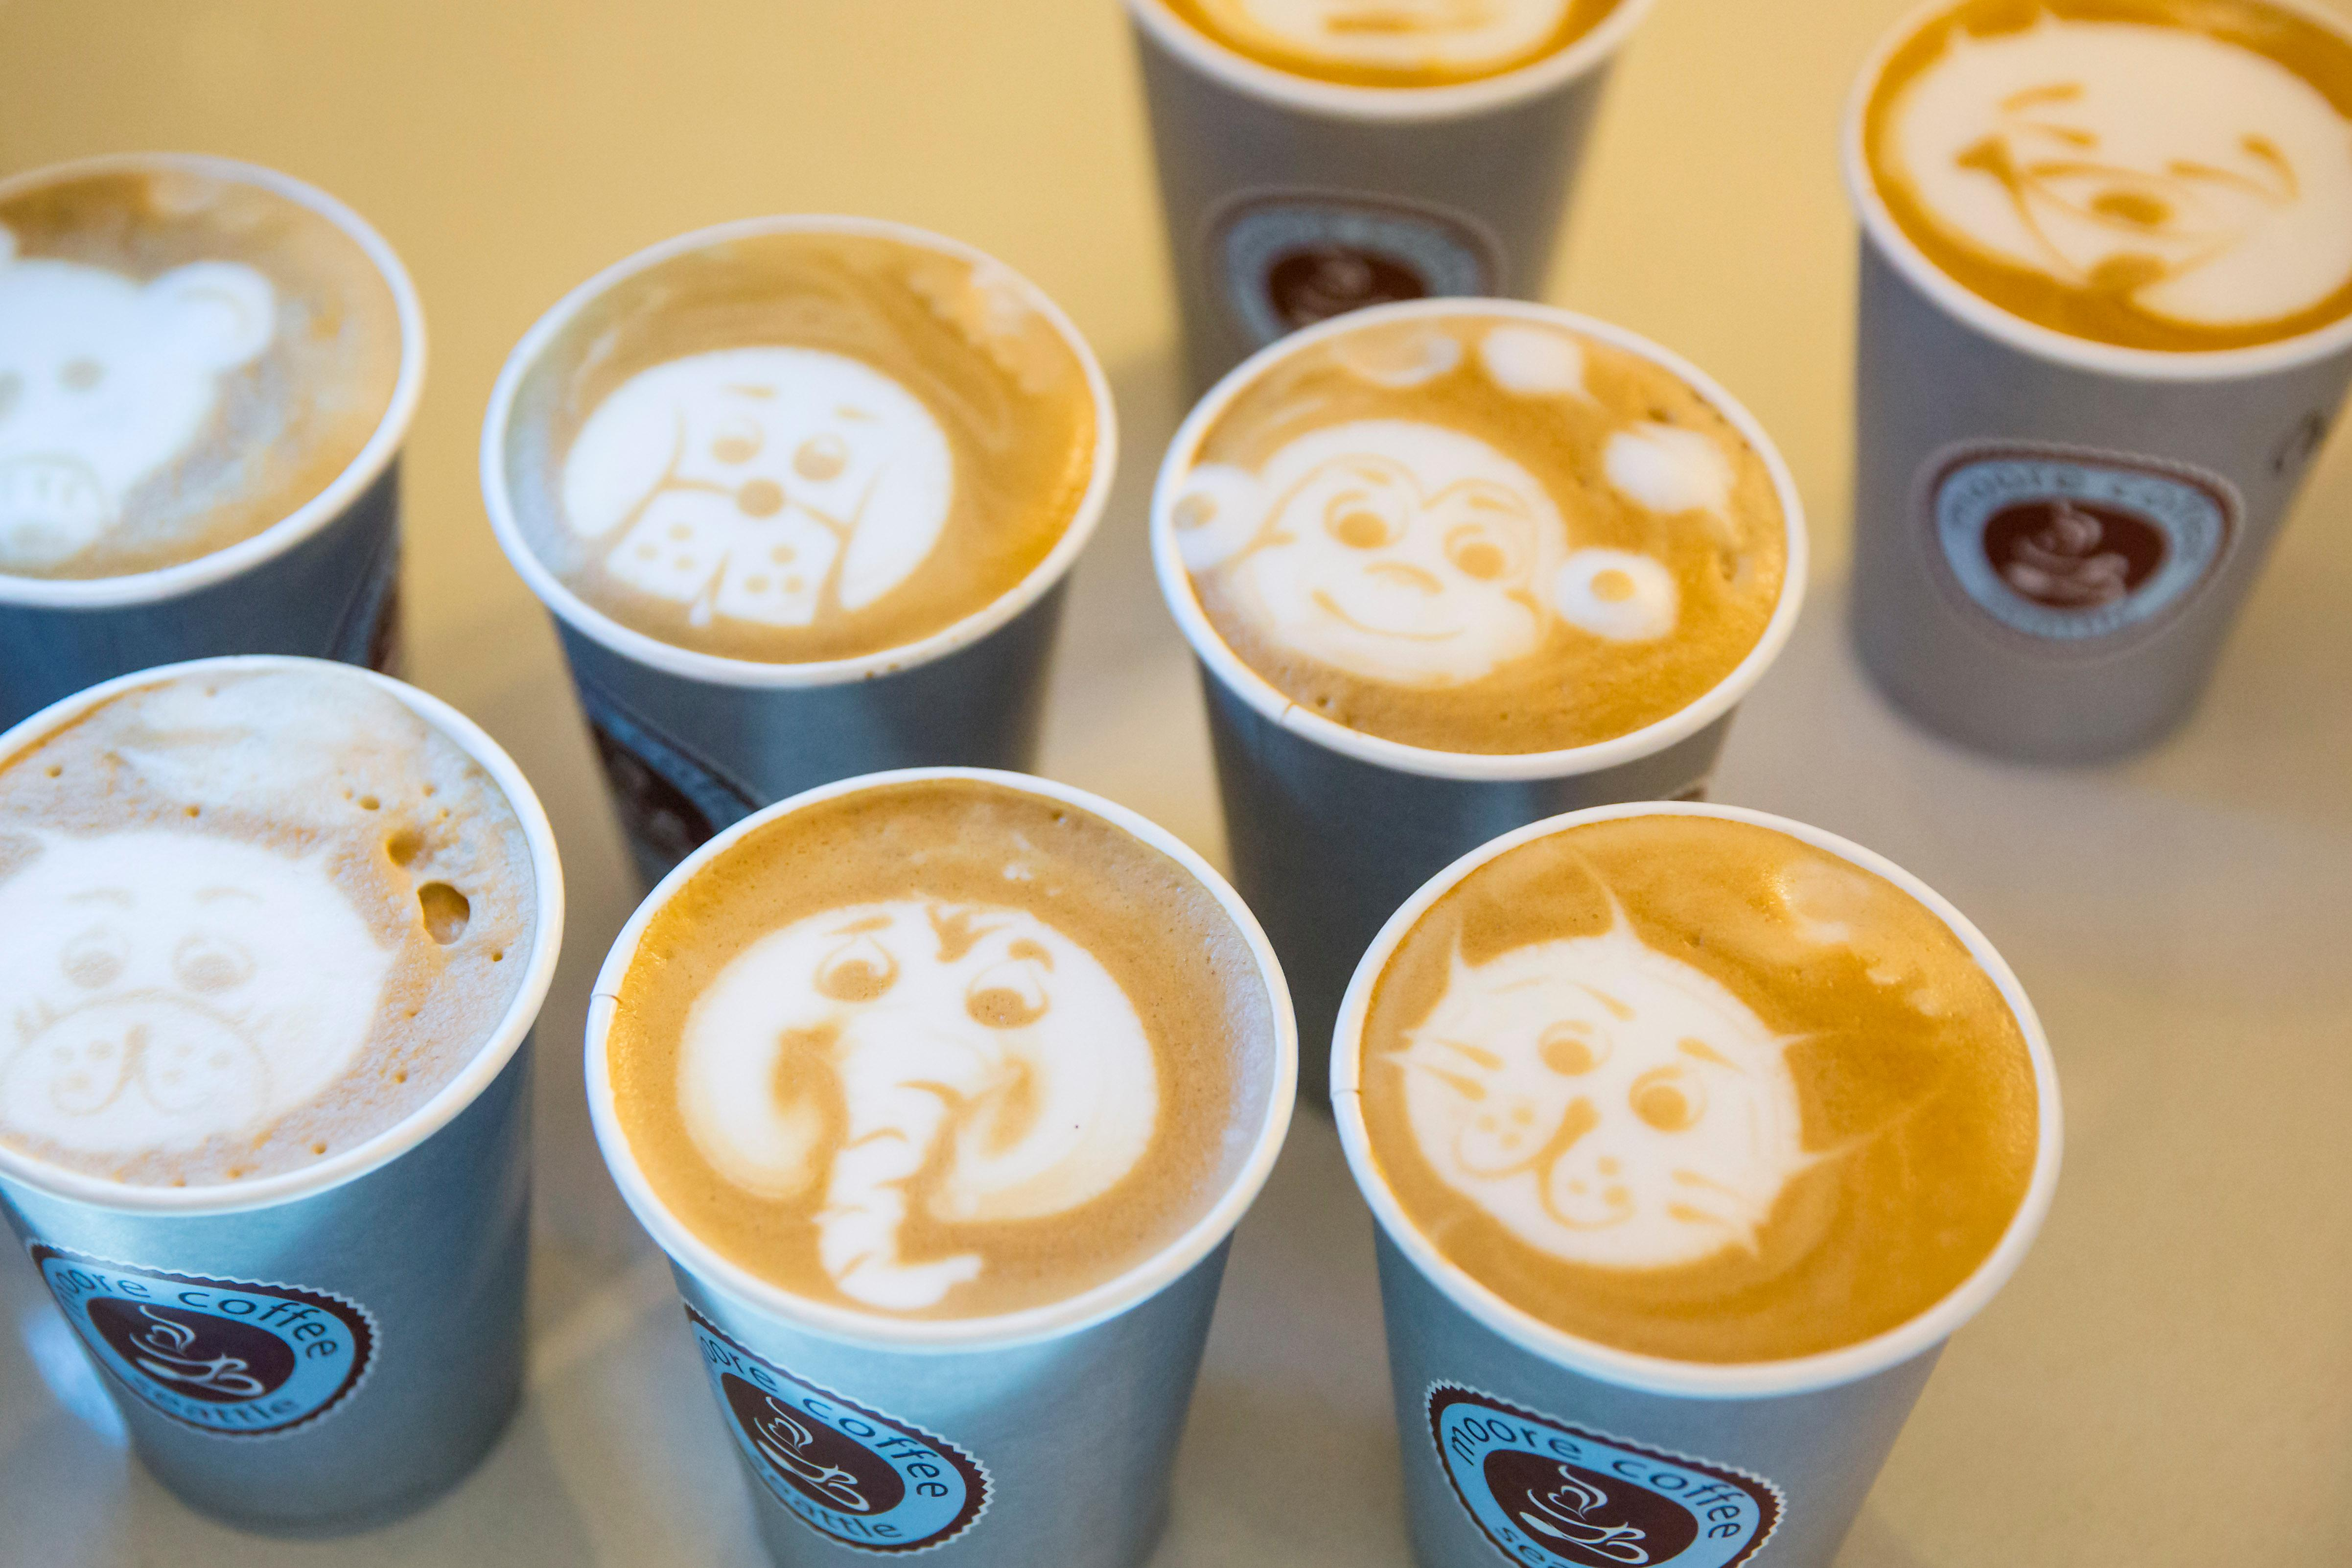 One location we couldn't miss for National Coffee Day was Moore Coffee, located at 1930 2nd Ave. The coffee shop specializes in latte art and will even do creative drawings on top of macha or taro lattes. (Sy Bean / Seattle Refined)